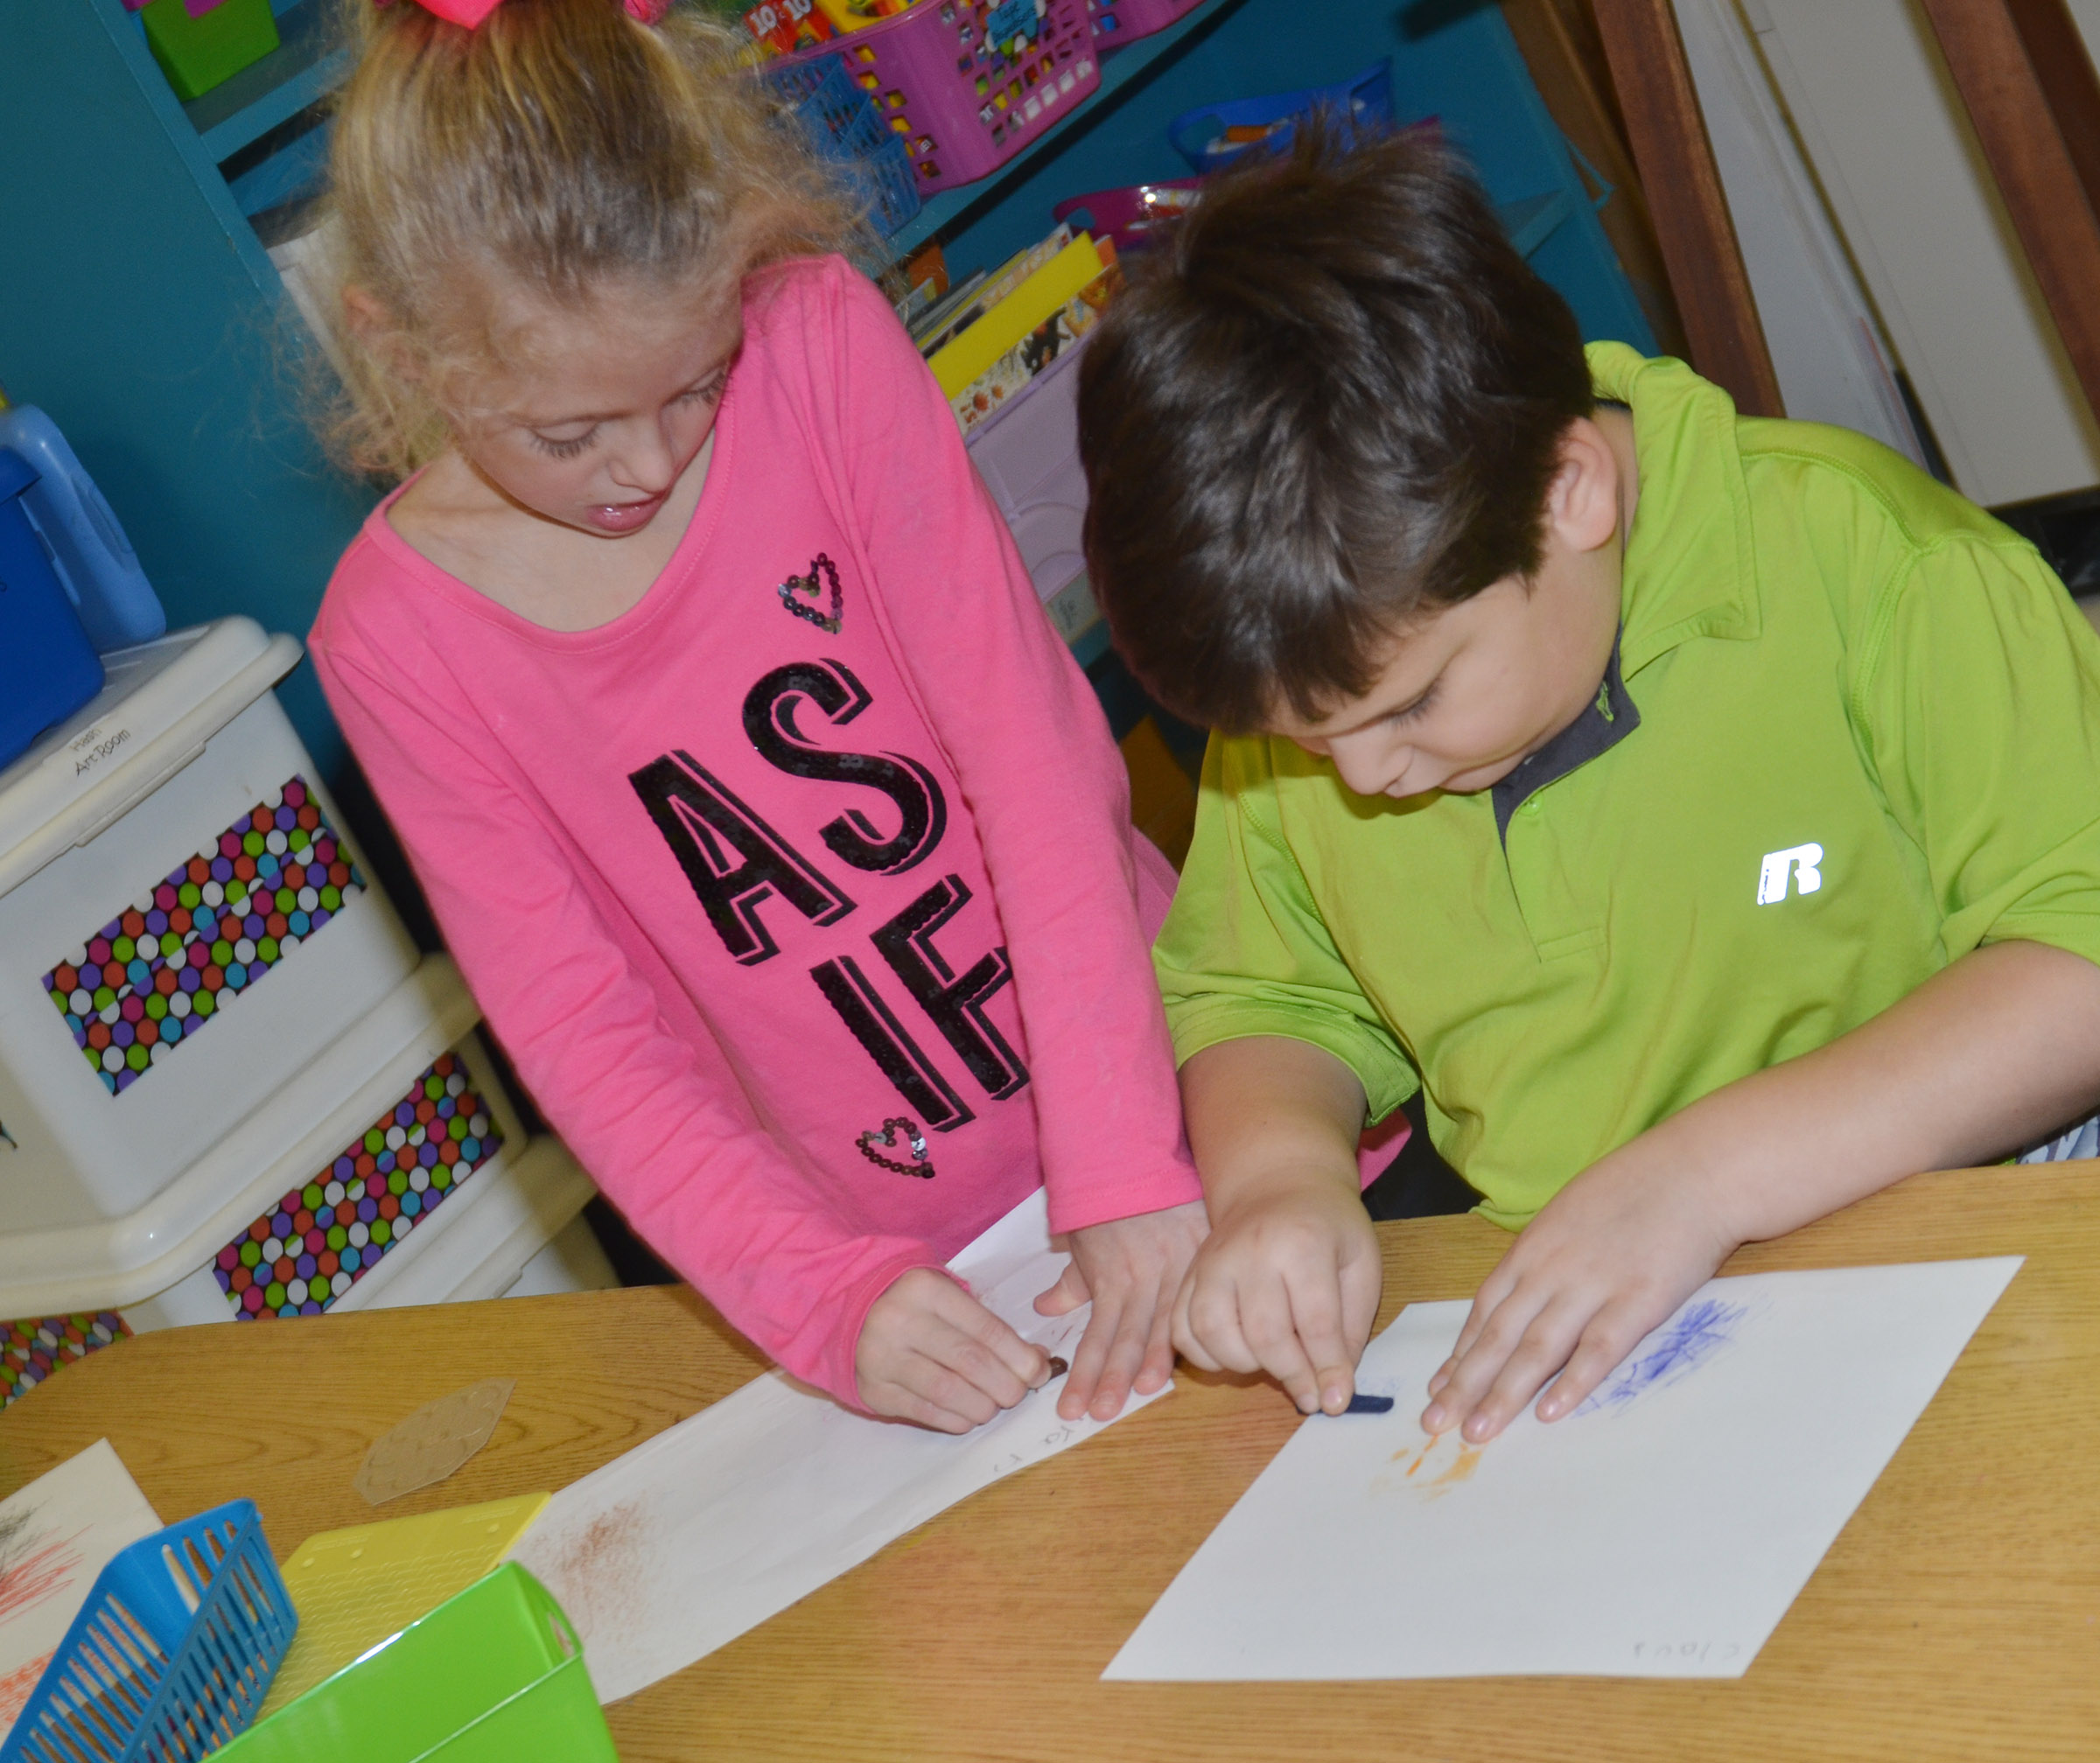 CES kindergarteners Aliyah Litsey, at left, and Cloud Malone rub patterns with crayons.